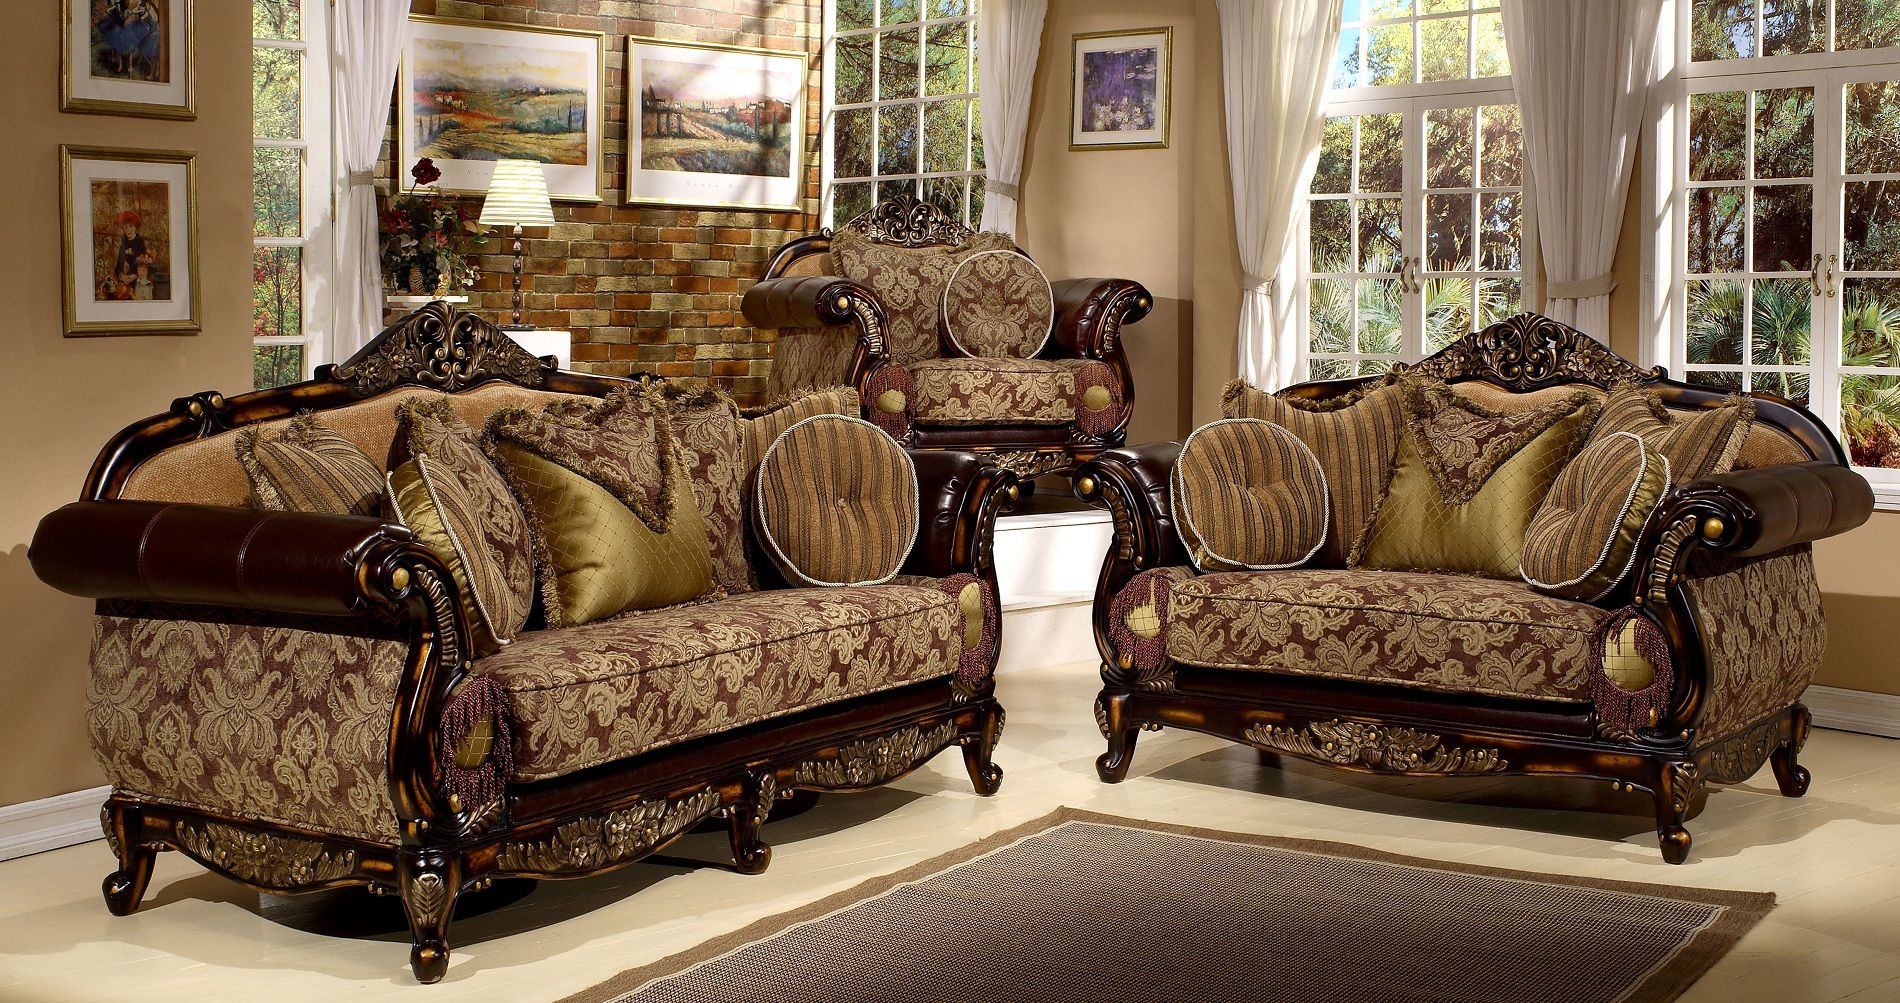 2 Tones Brown Finish Living Room Set With Gold Accent Classical